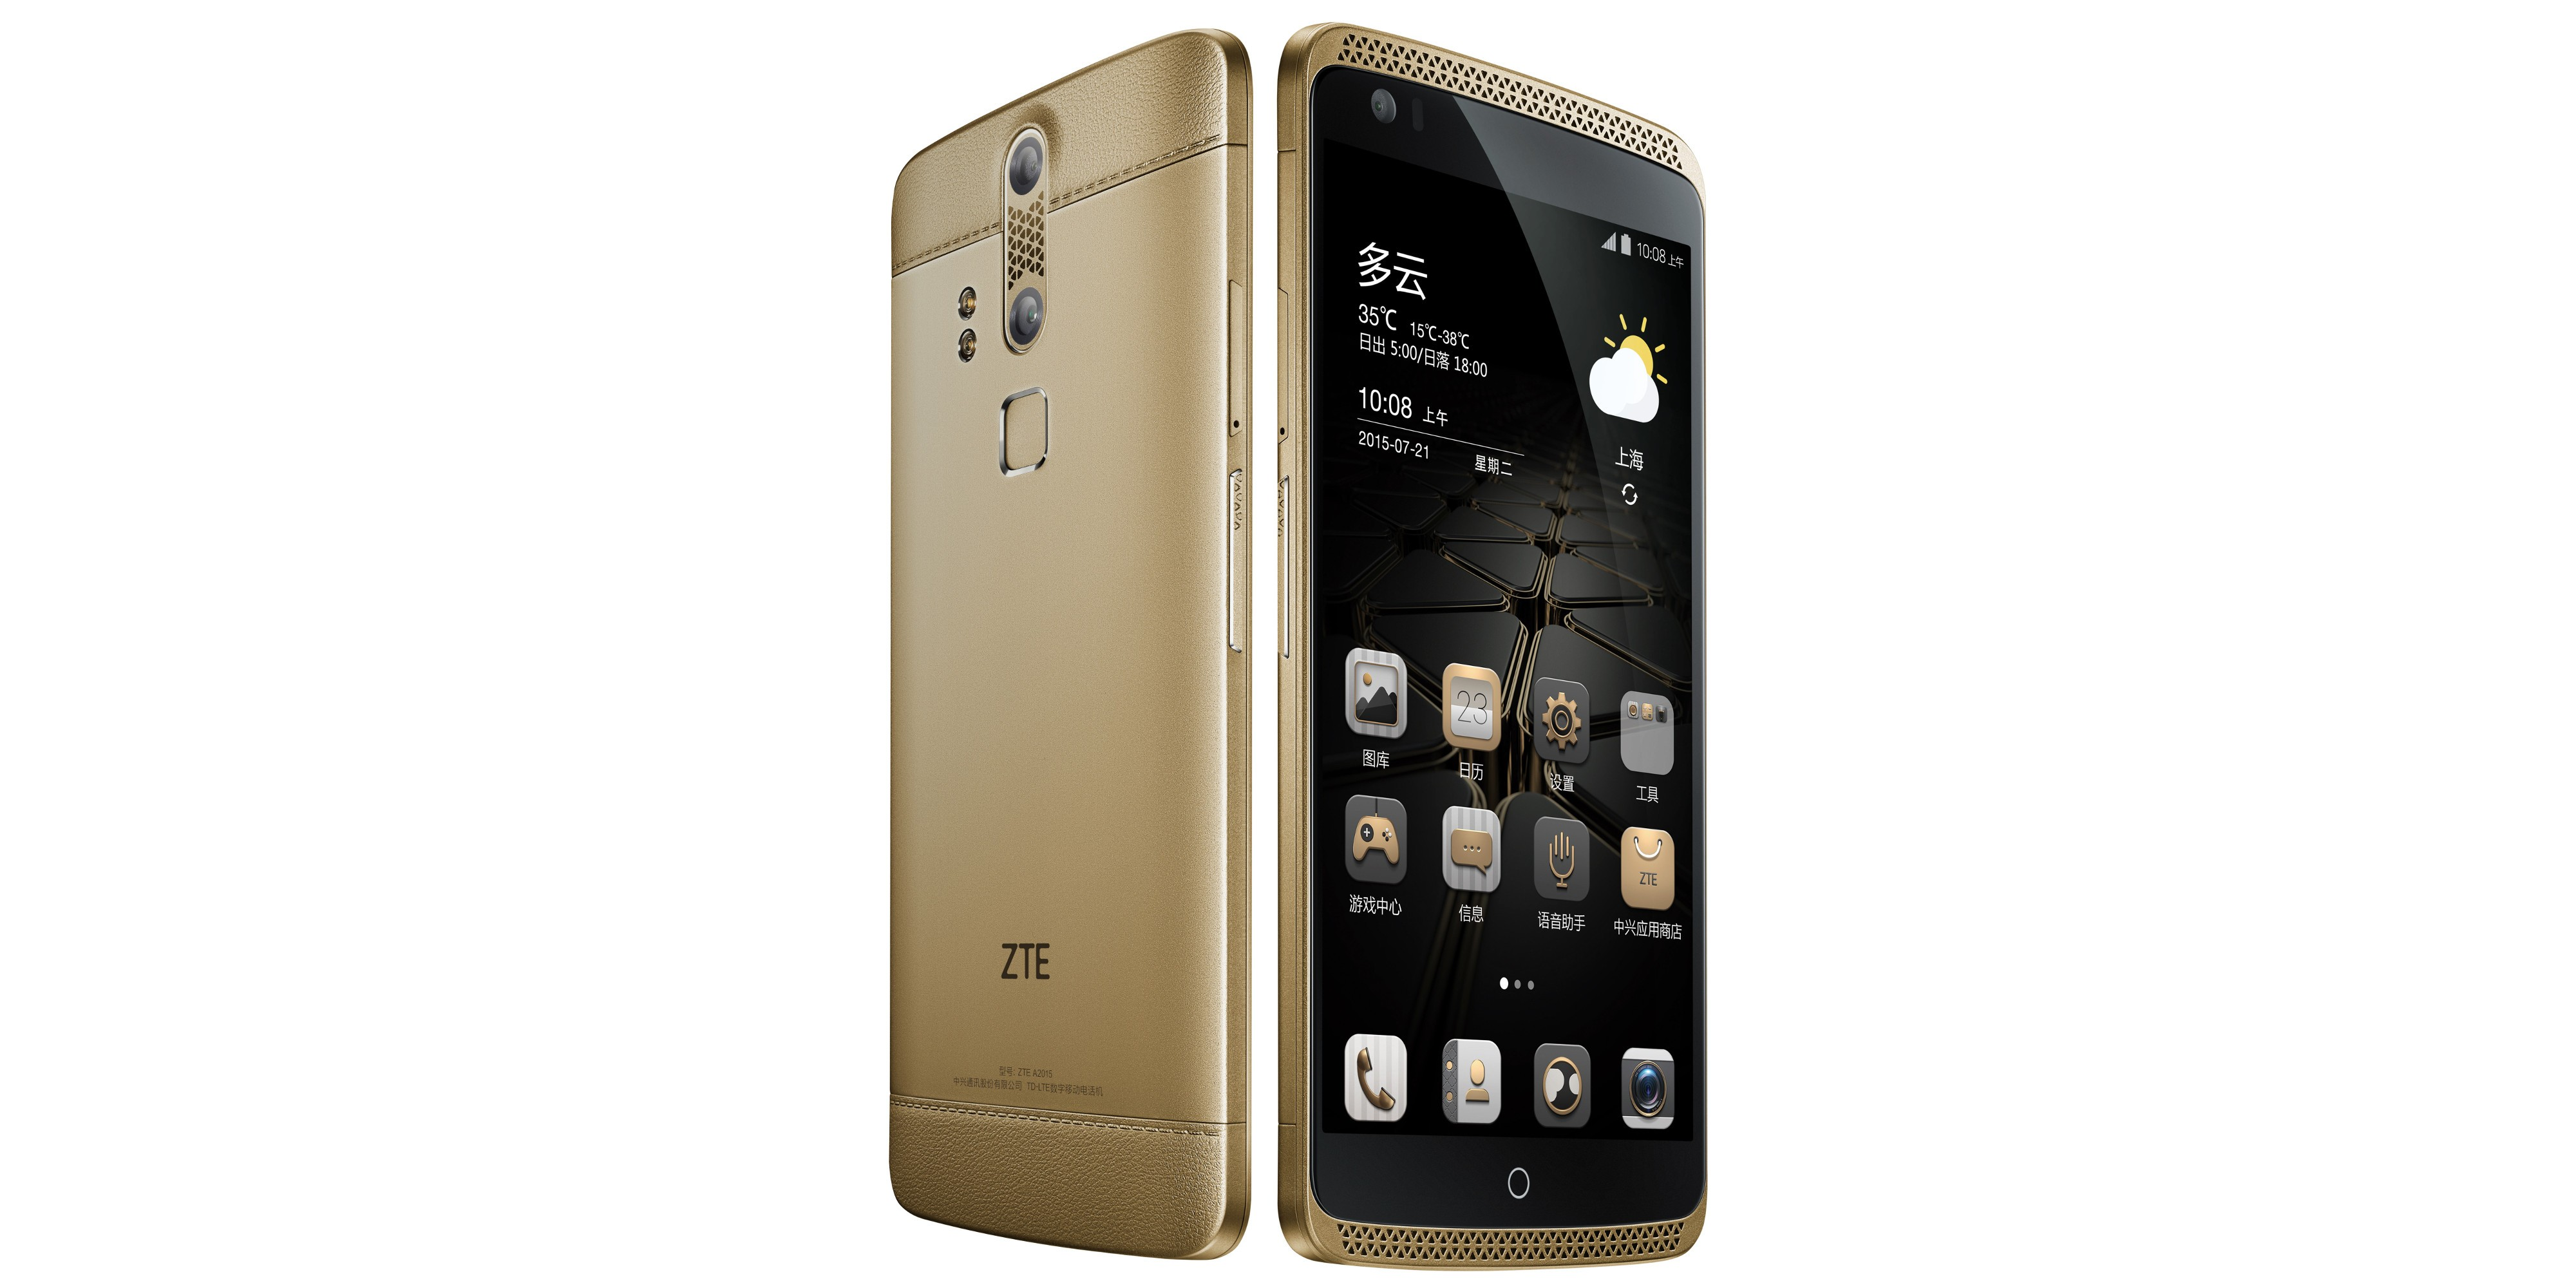 zte-launches-axon-lux-phone-in-china-faux-leather-128gb-storage-eye-scanner-487493-2